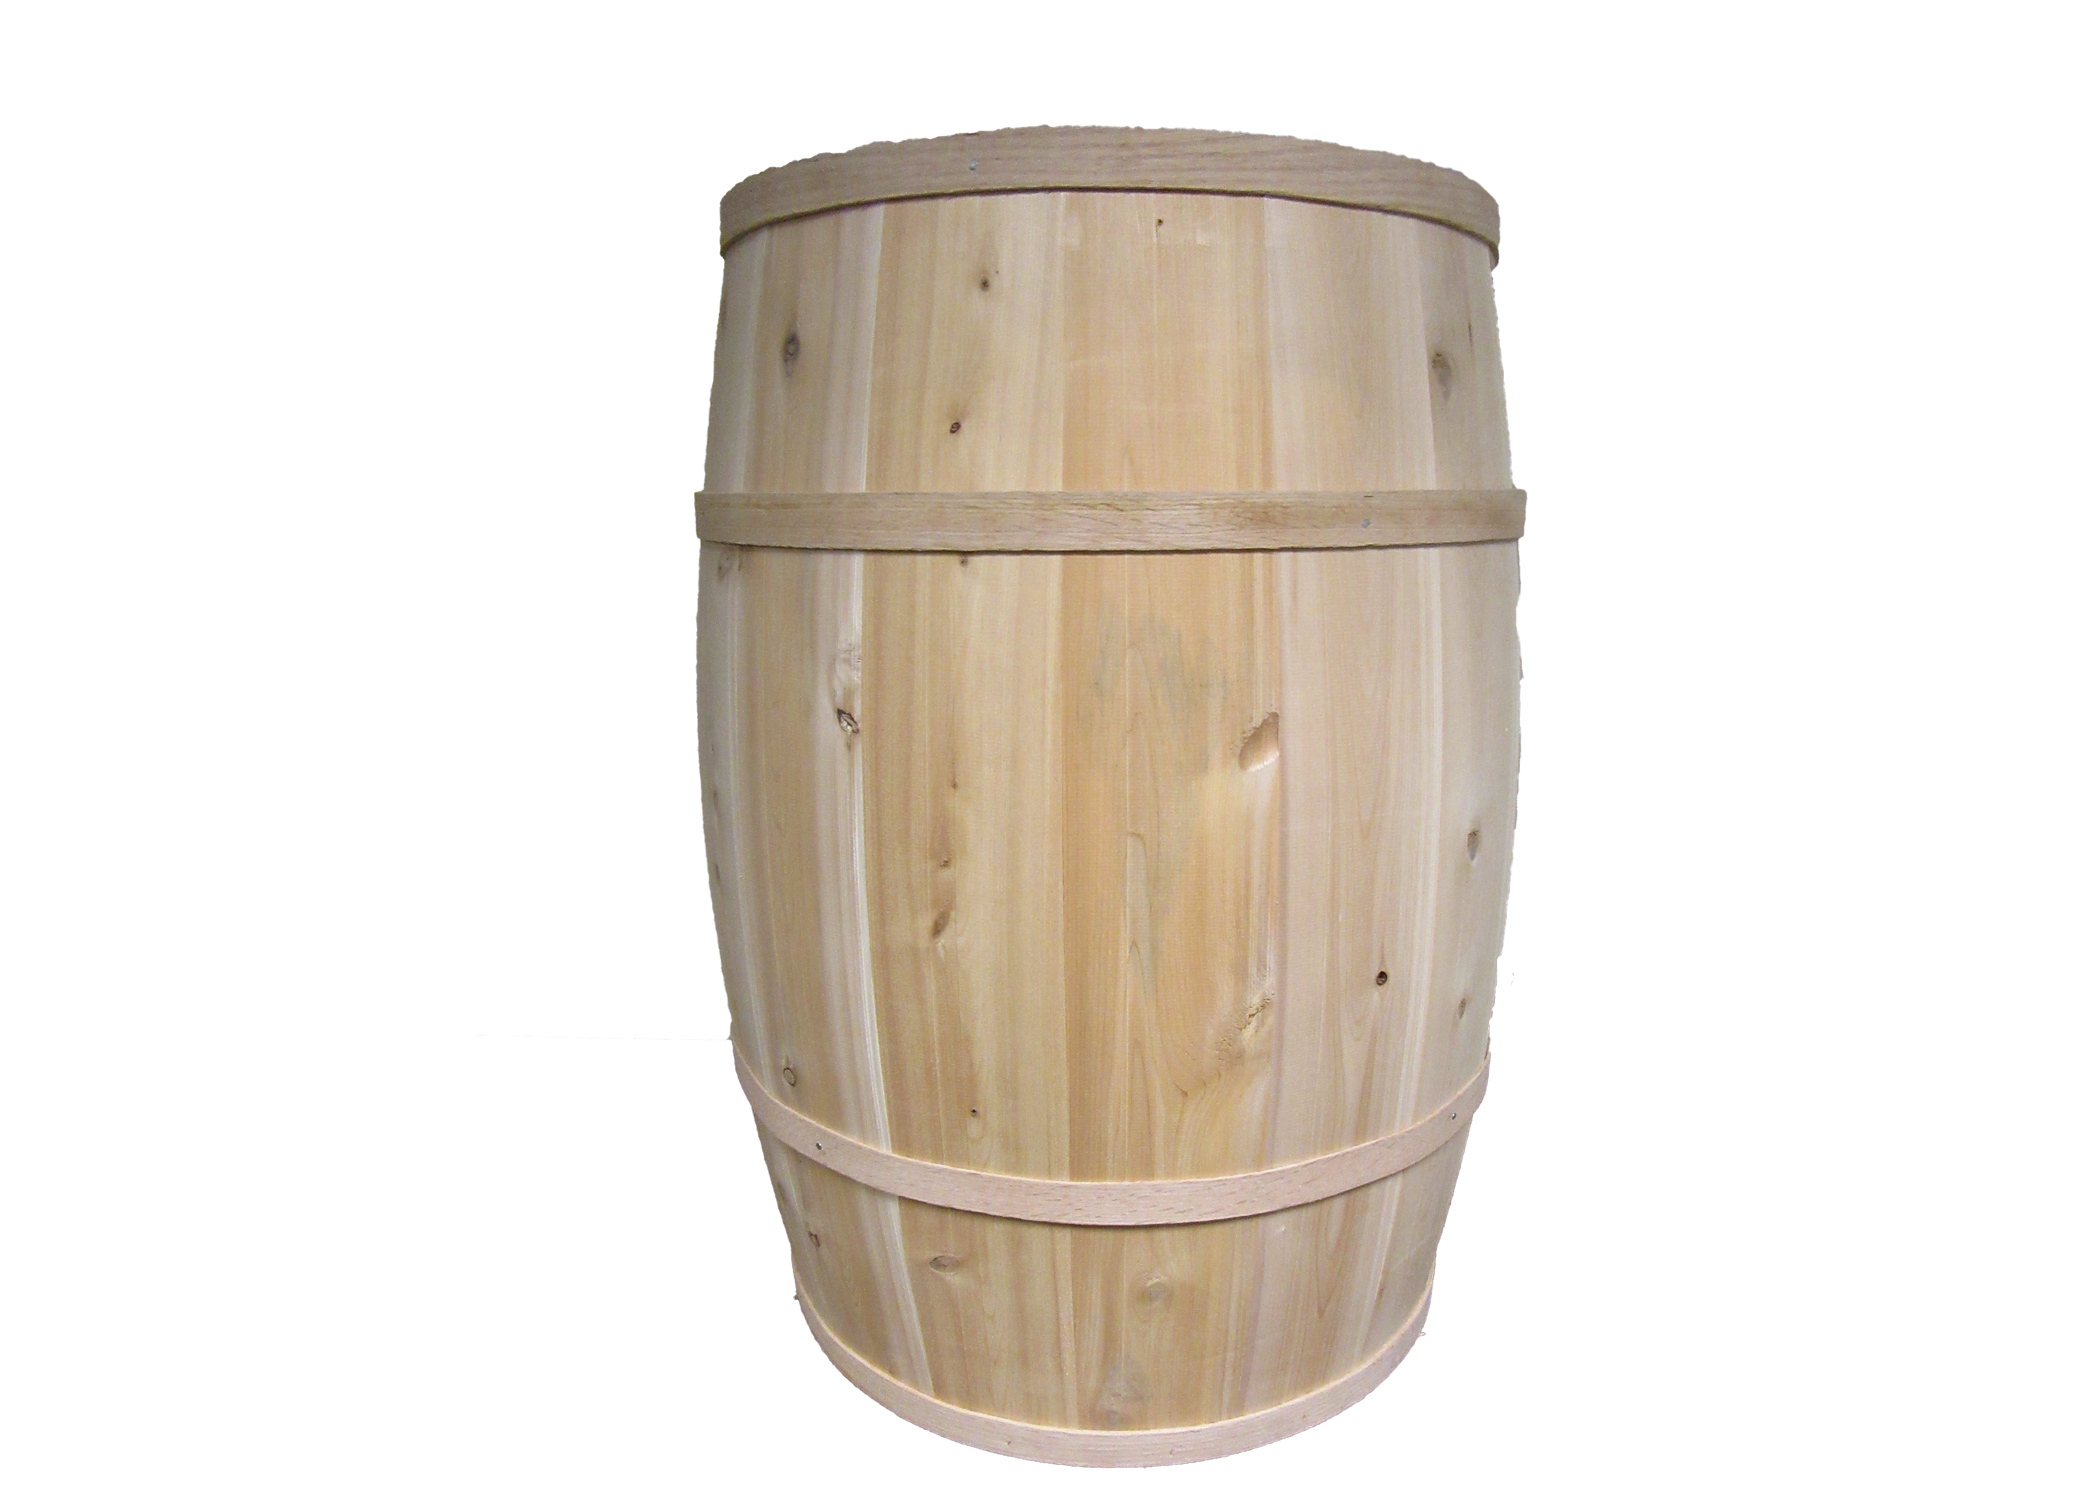 All Maine Bucket B200 18 x 30 Inch Barrel